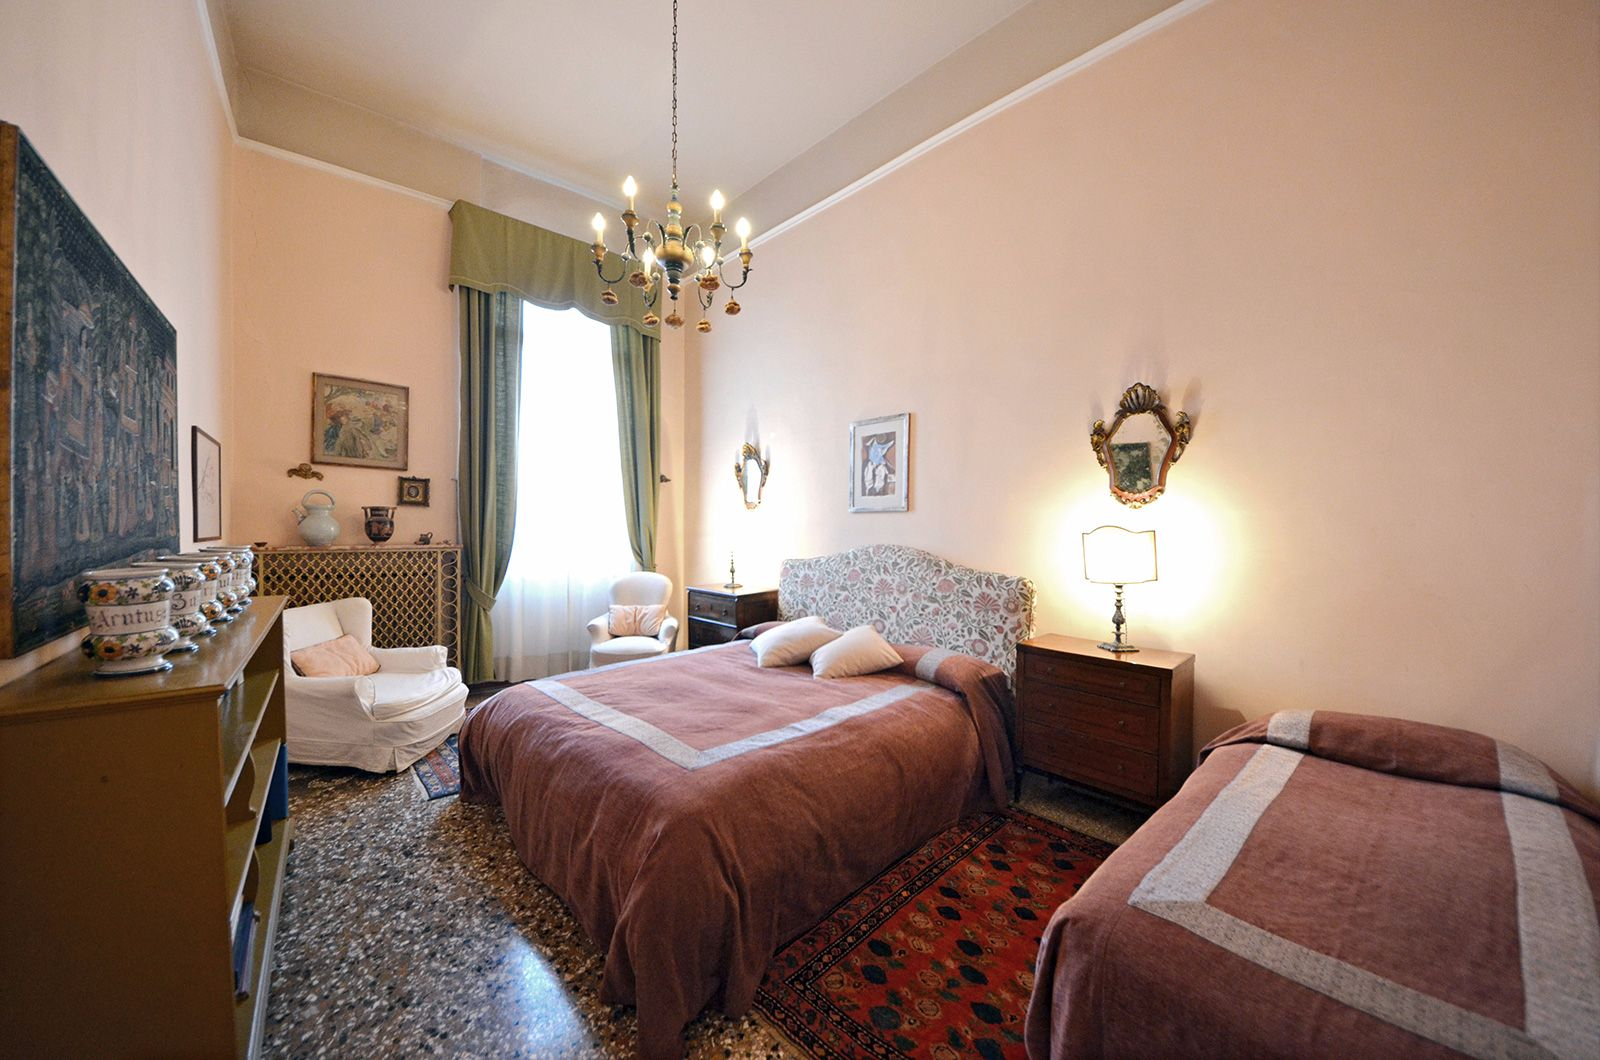 second elegant and spacious double bedroom